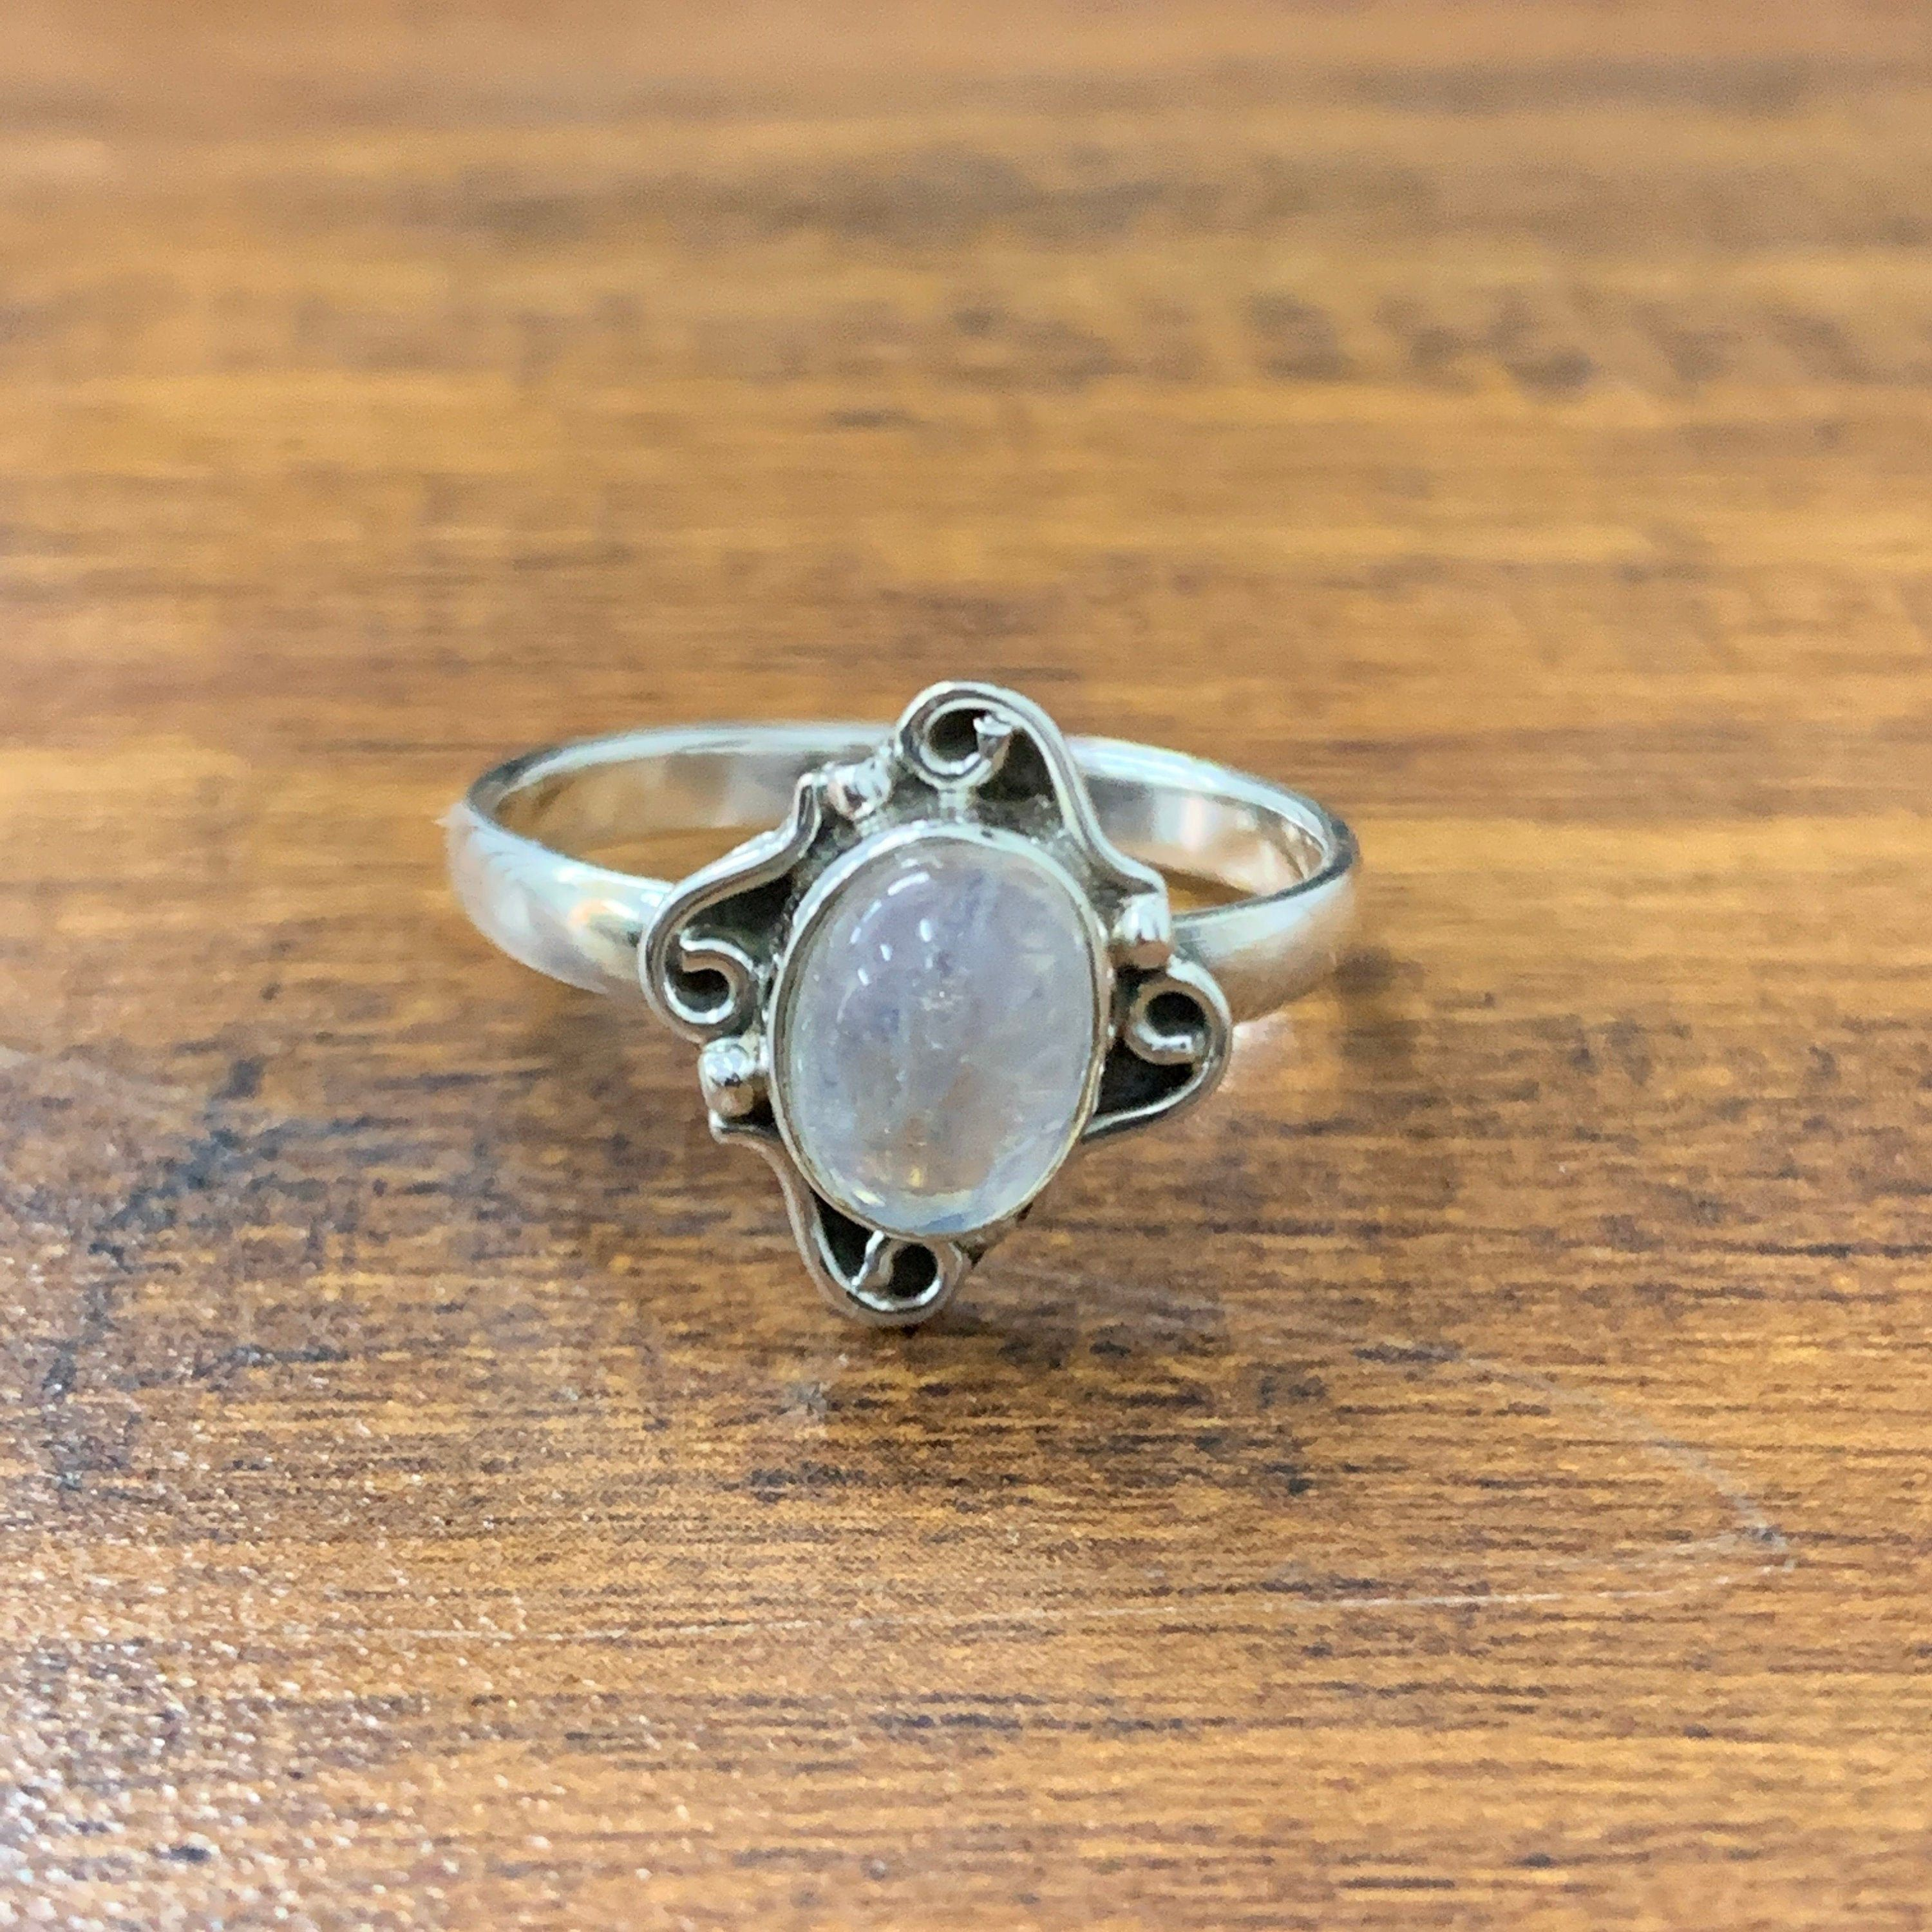 Natural Diamond Ring Solid 925 Sterling Silver Handmade Victorian Women Jewelry